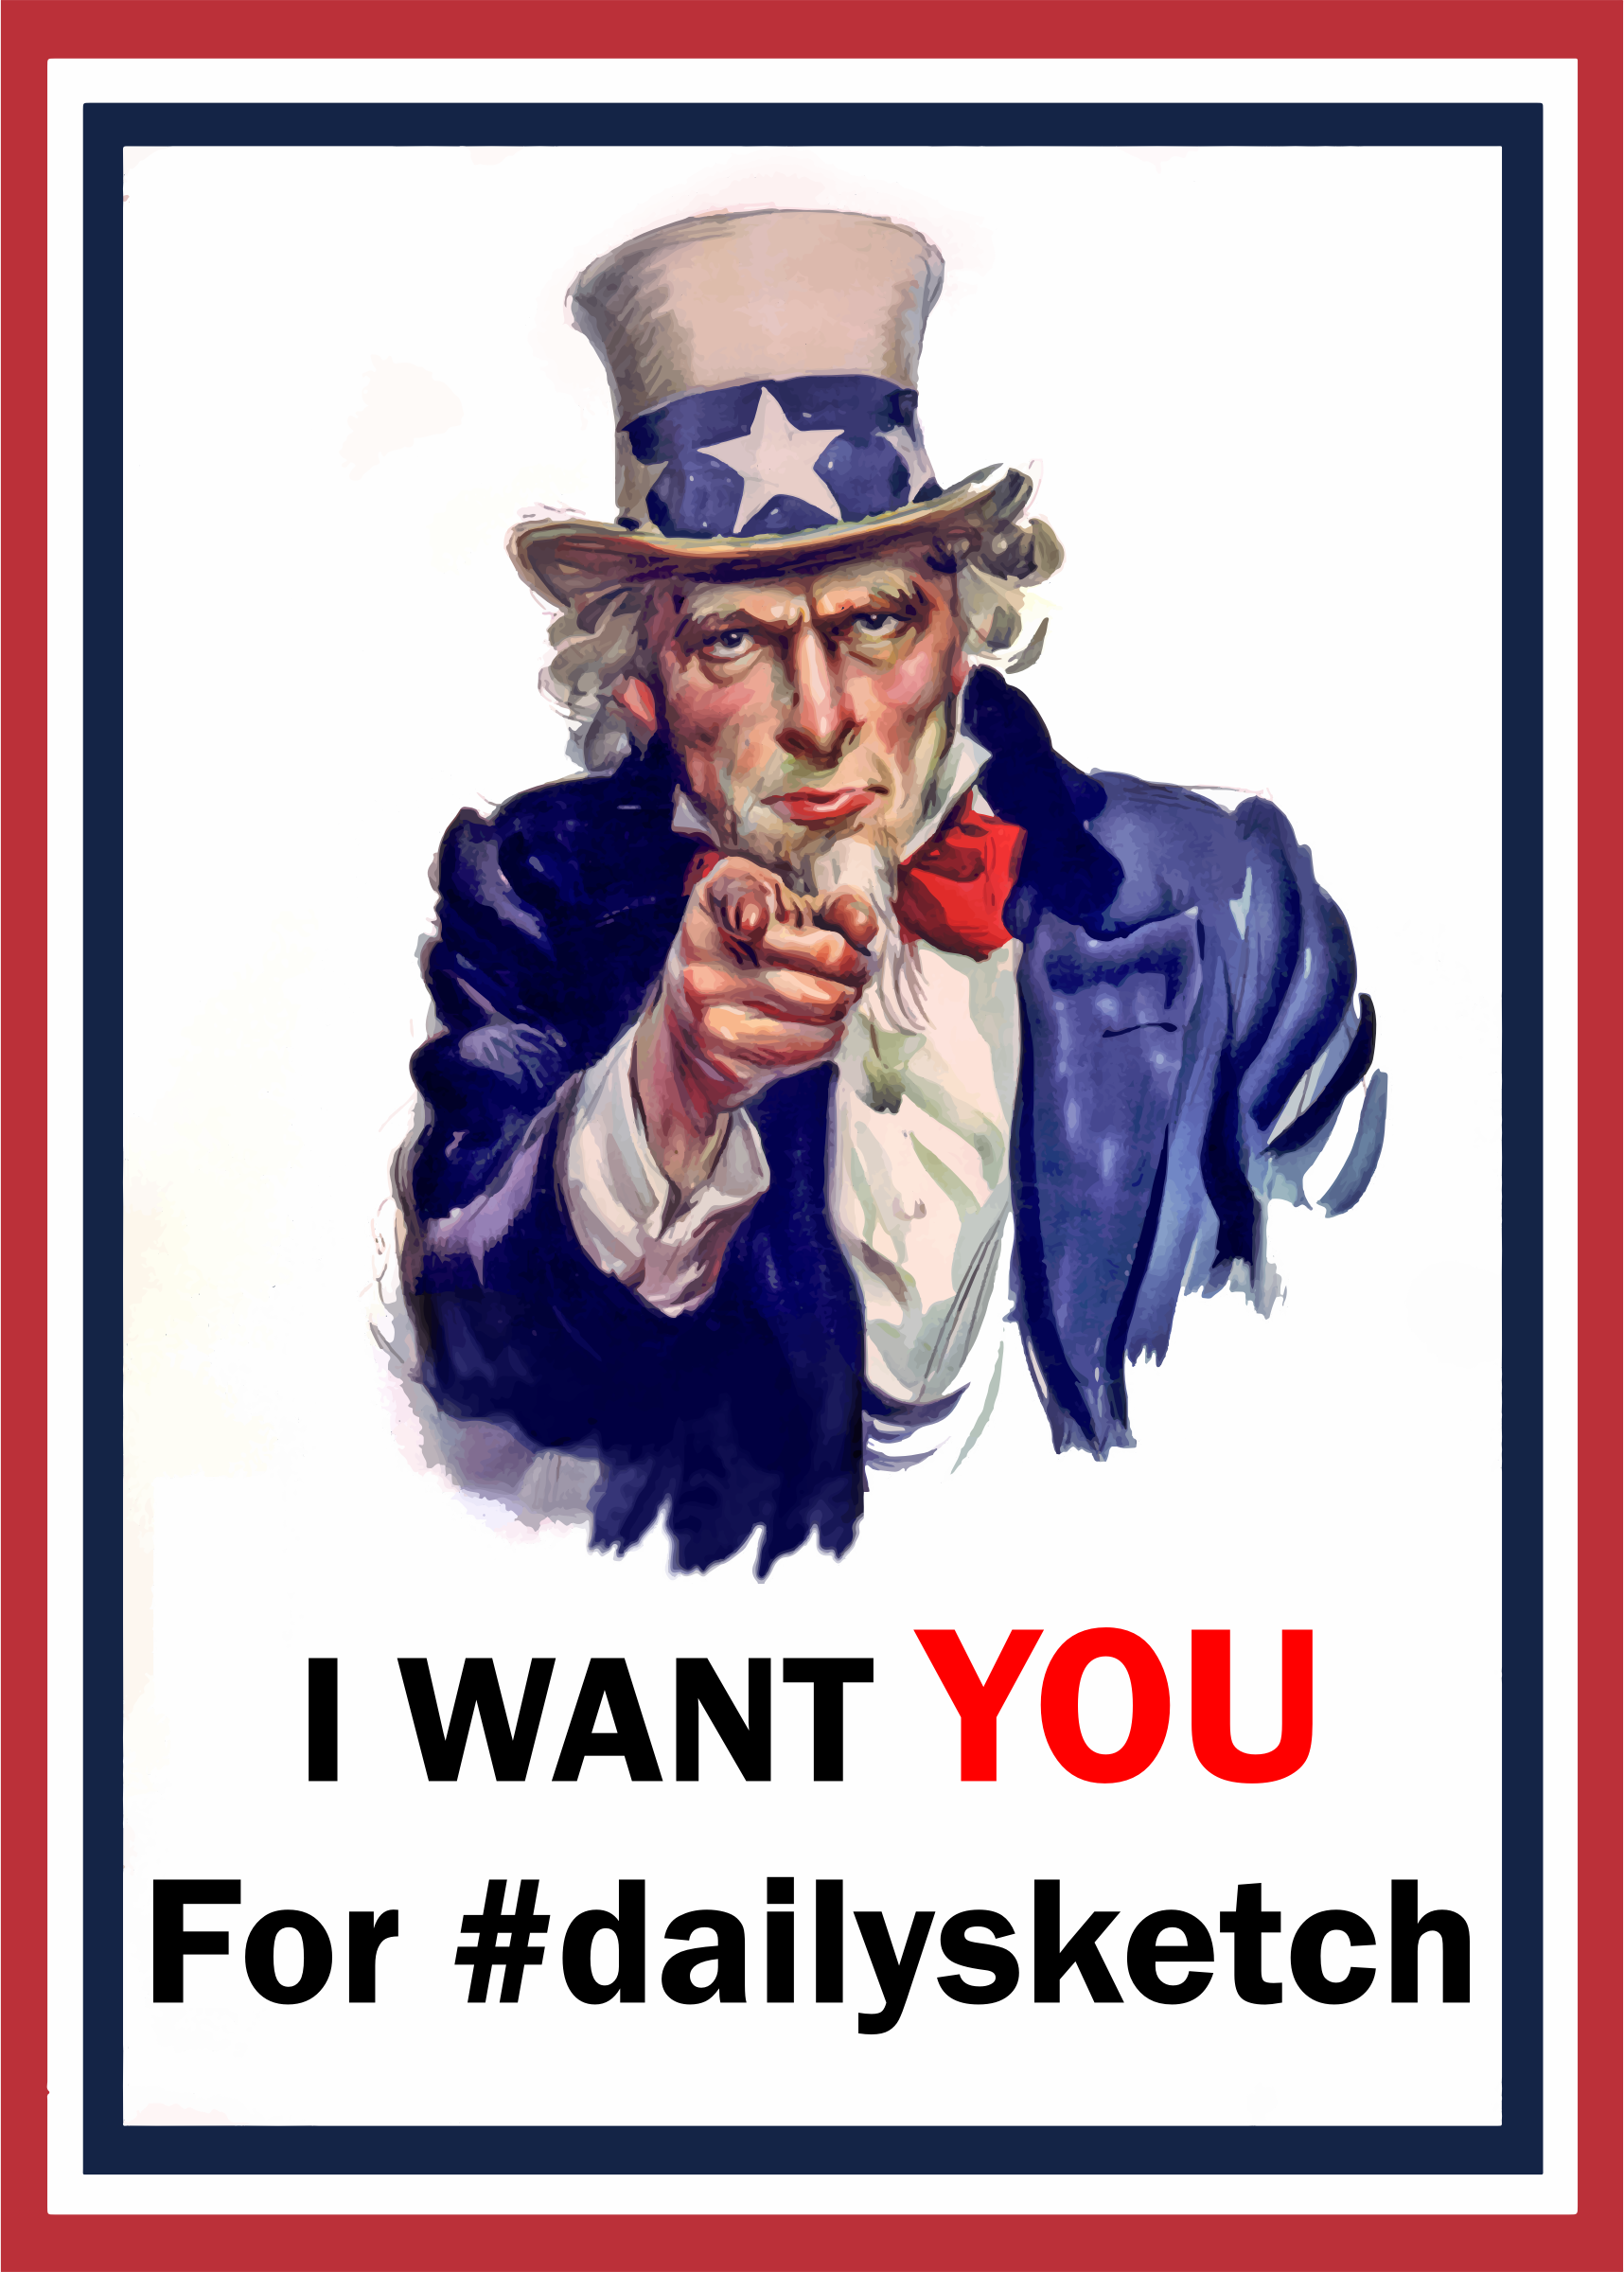 Uncle Sam Wants You For Dailysketch (Cleaned Up) by GDJ